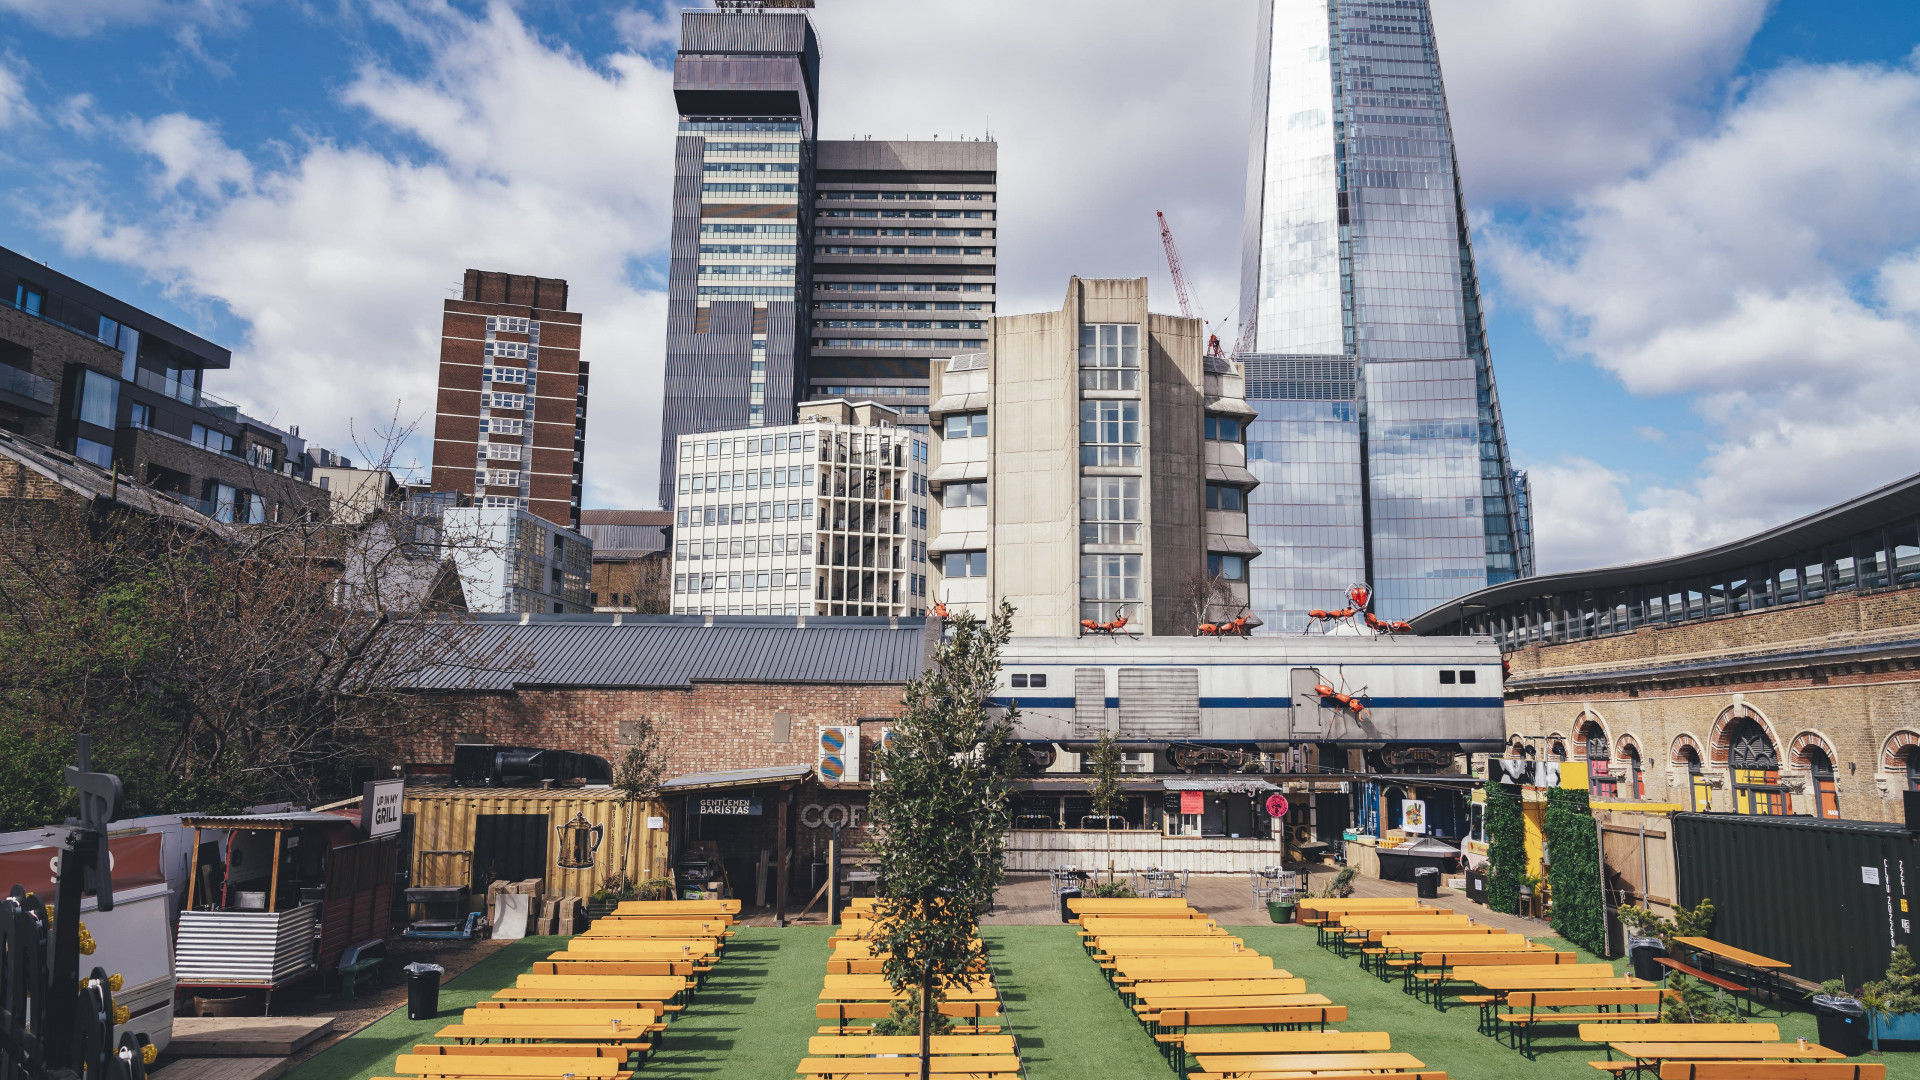 This is an image of the outdoor seating at Vinegar Yard in London Bridge.